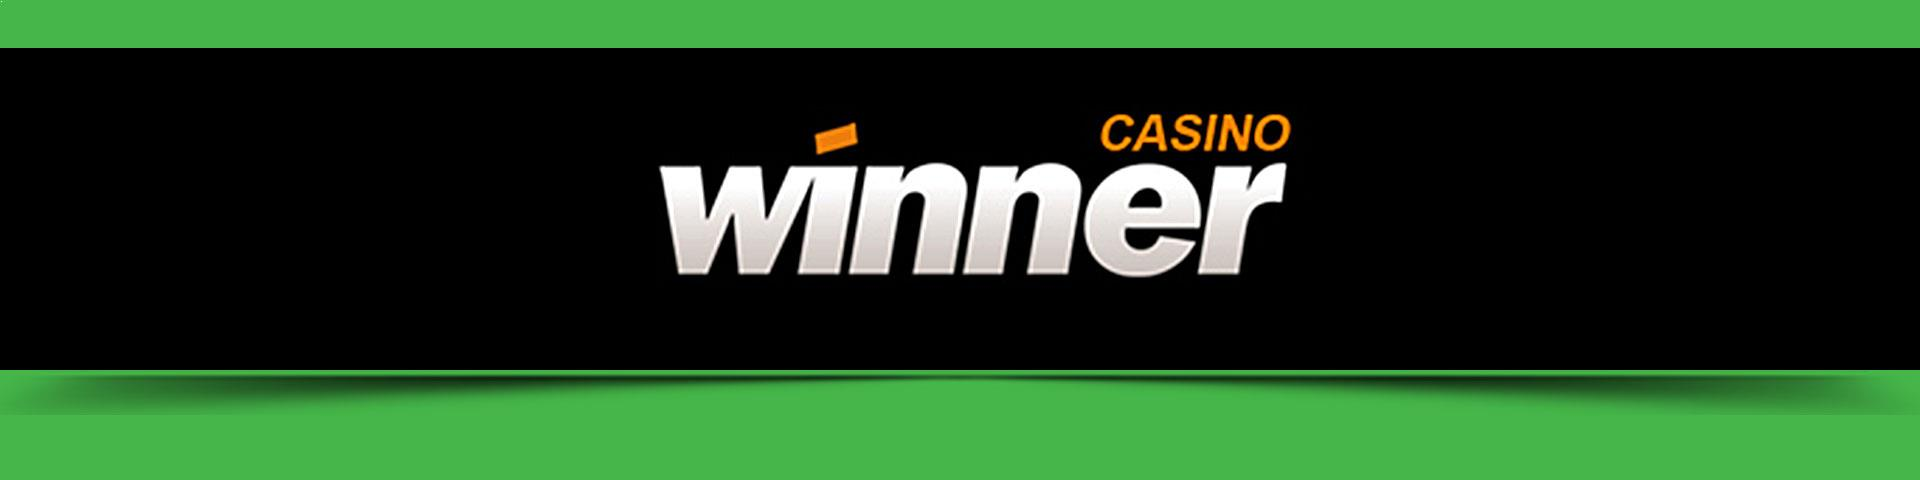 winner casino multabafta slider